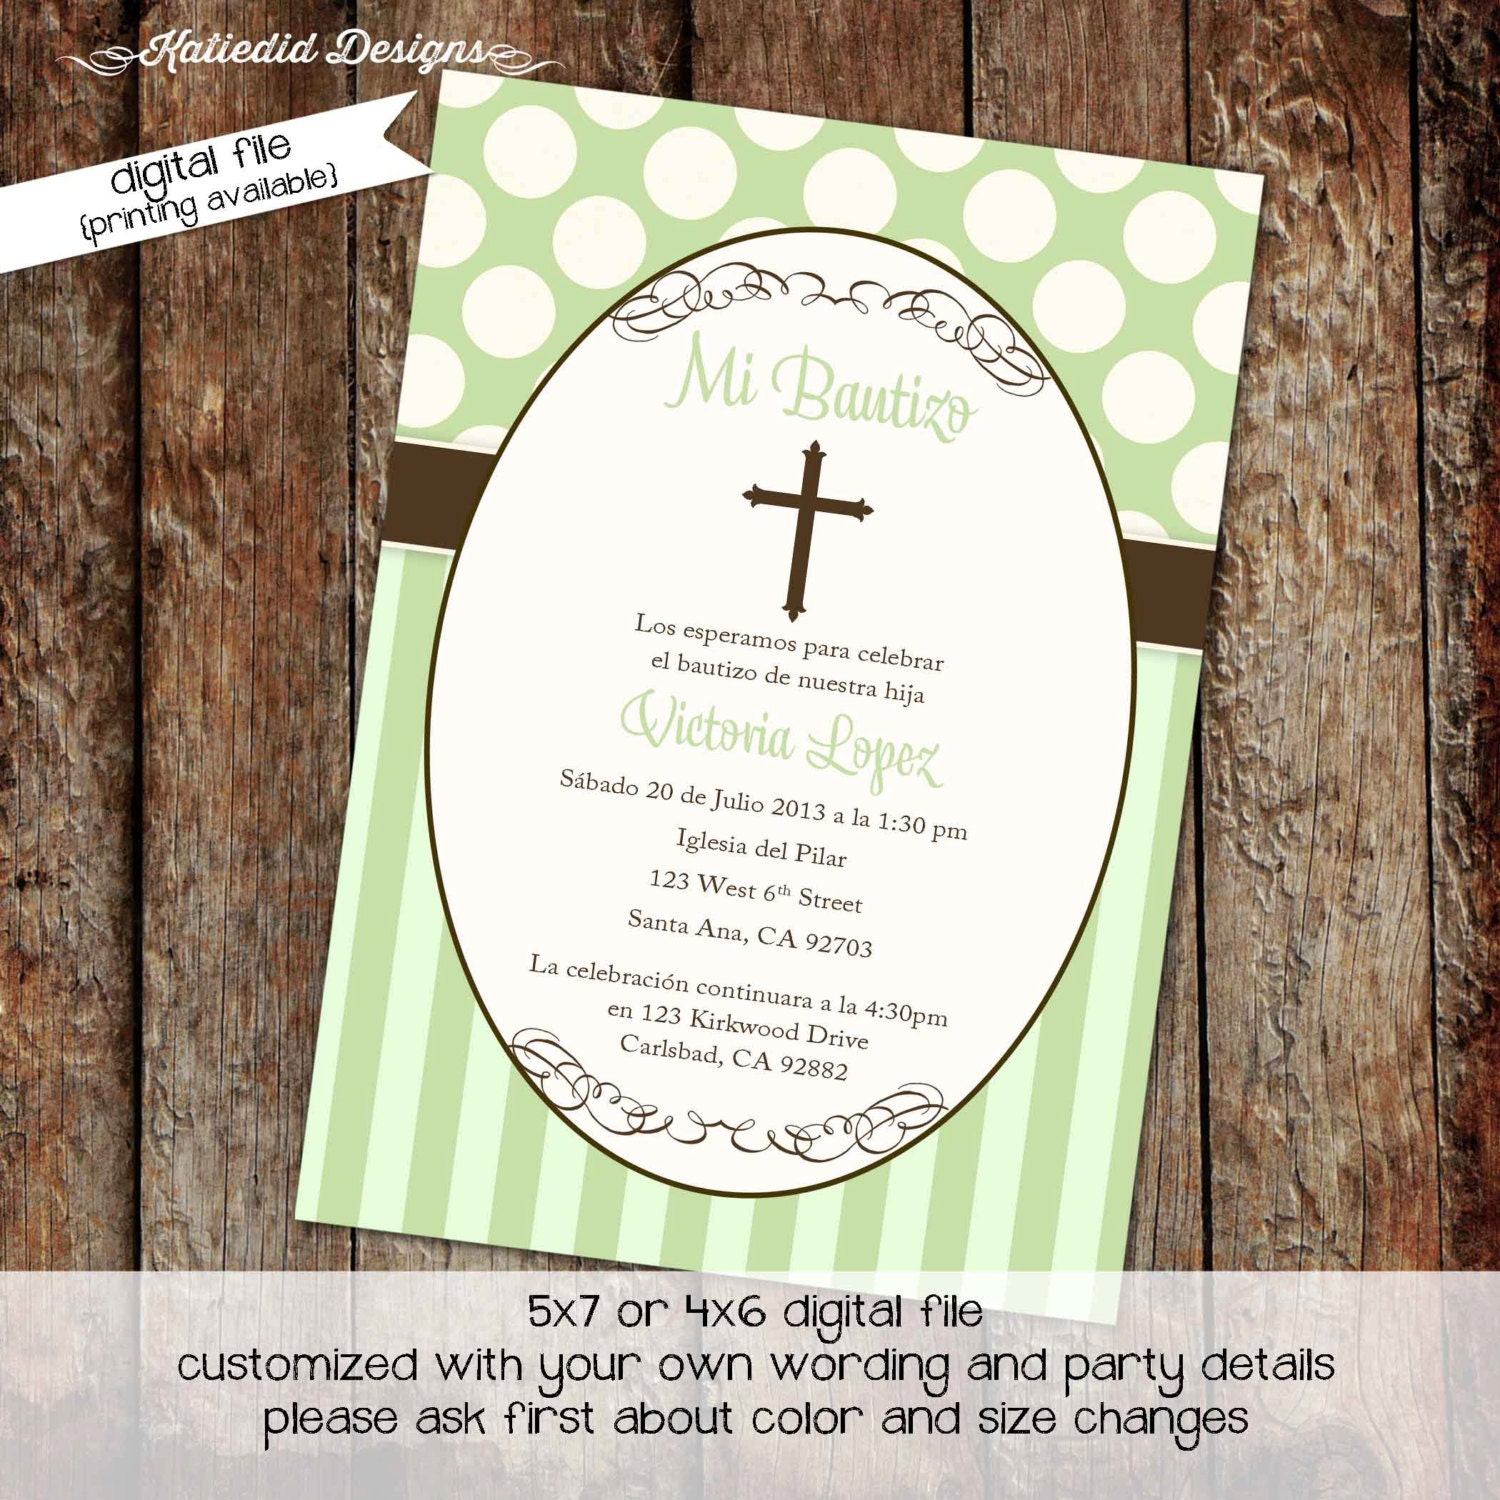 First communion invitation spanish christening baptism first communion invitation spanish christening baptism announcement baby boy pastel green polka dots stripes crucifix 707 katiedid designs stopboris Gallery